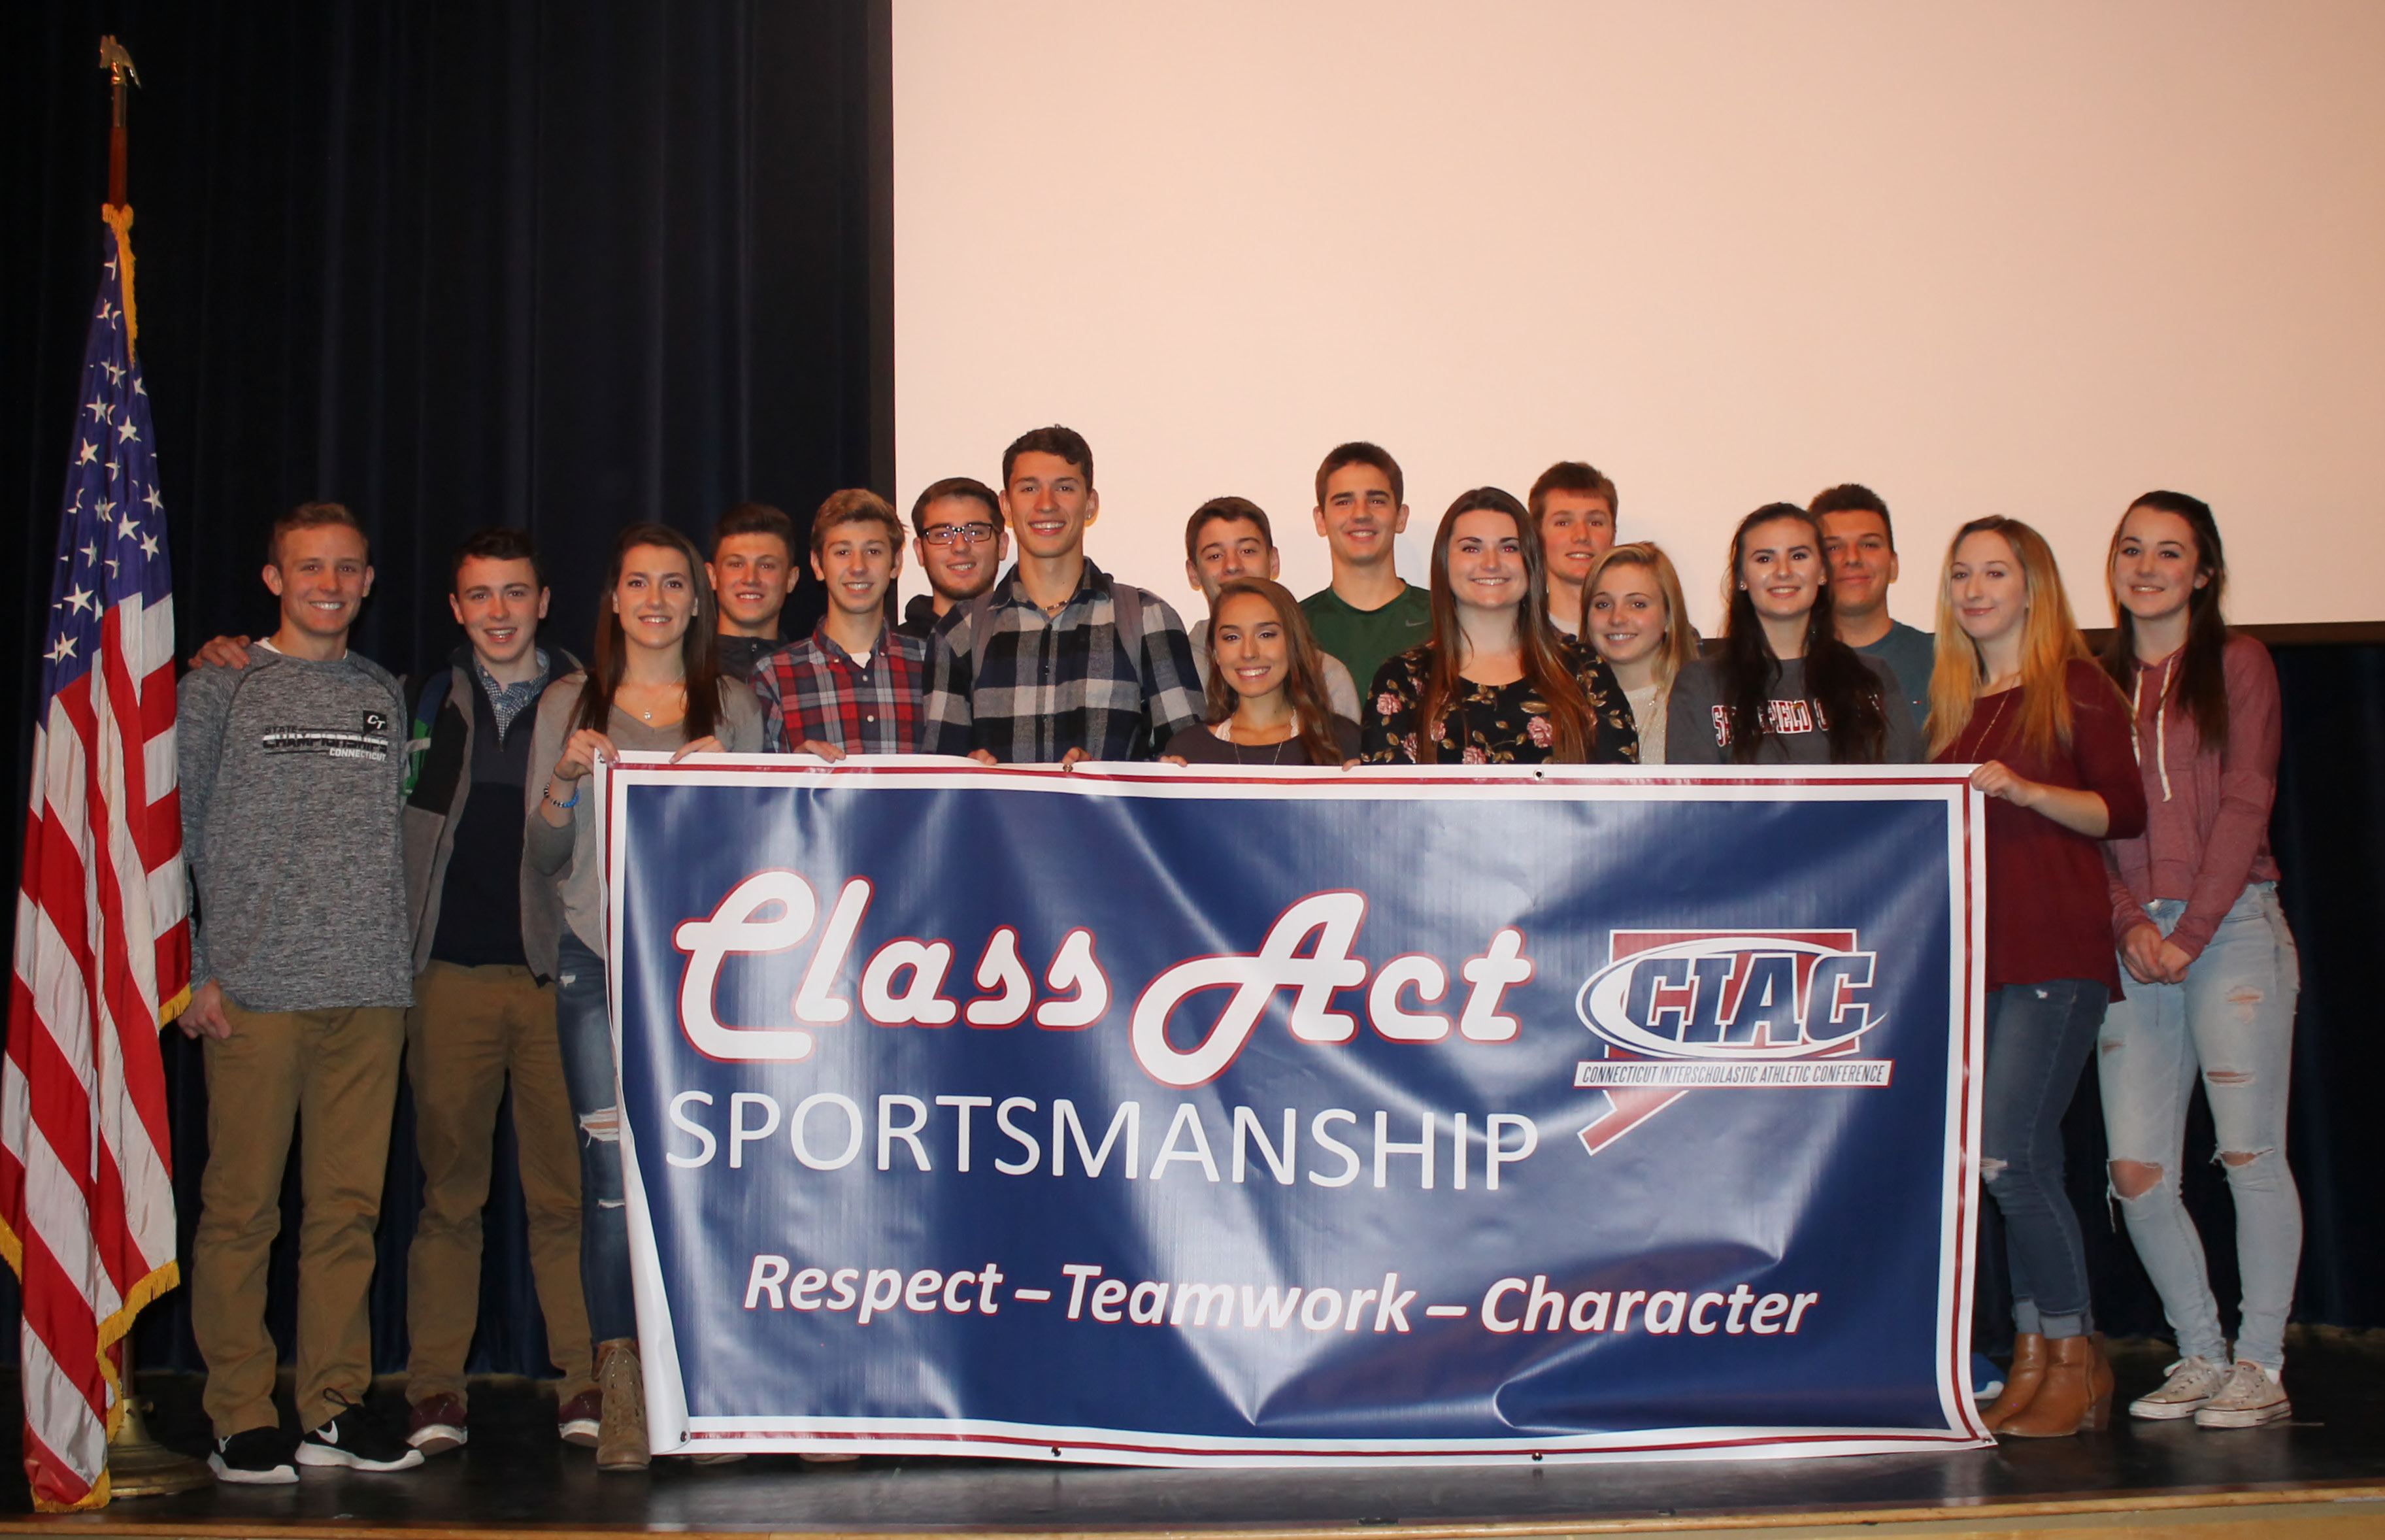 A group of CRHS athletes from the Captains Council presented guidelines from the CIAC